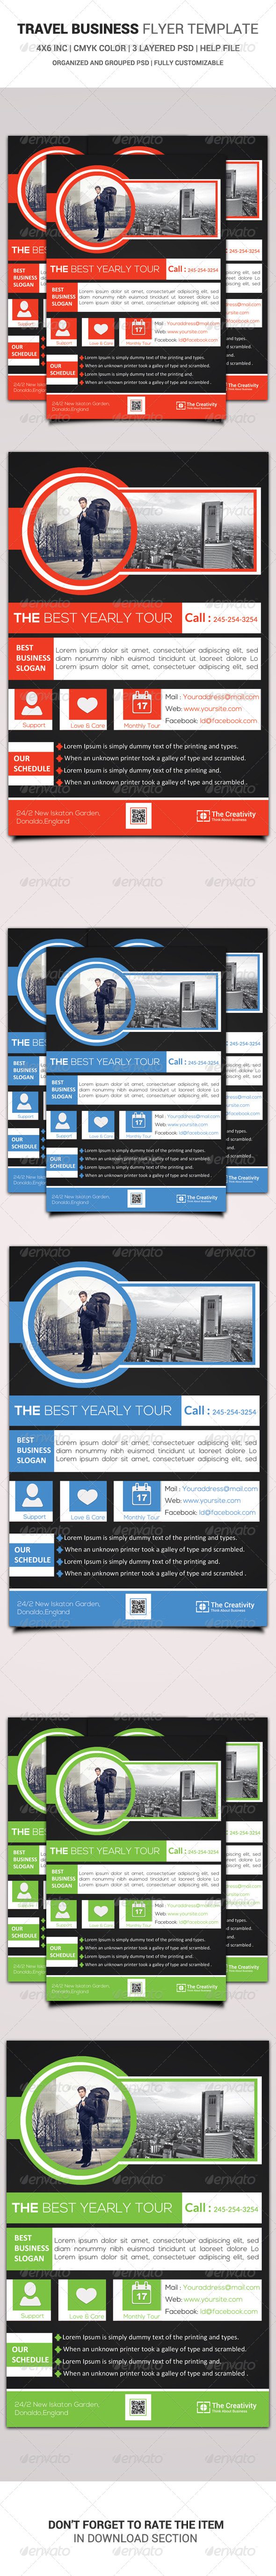 GraphicRiver Travel Business Flyer Template 6462915